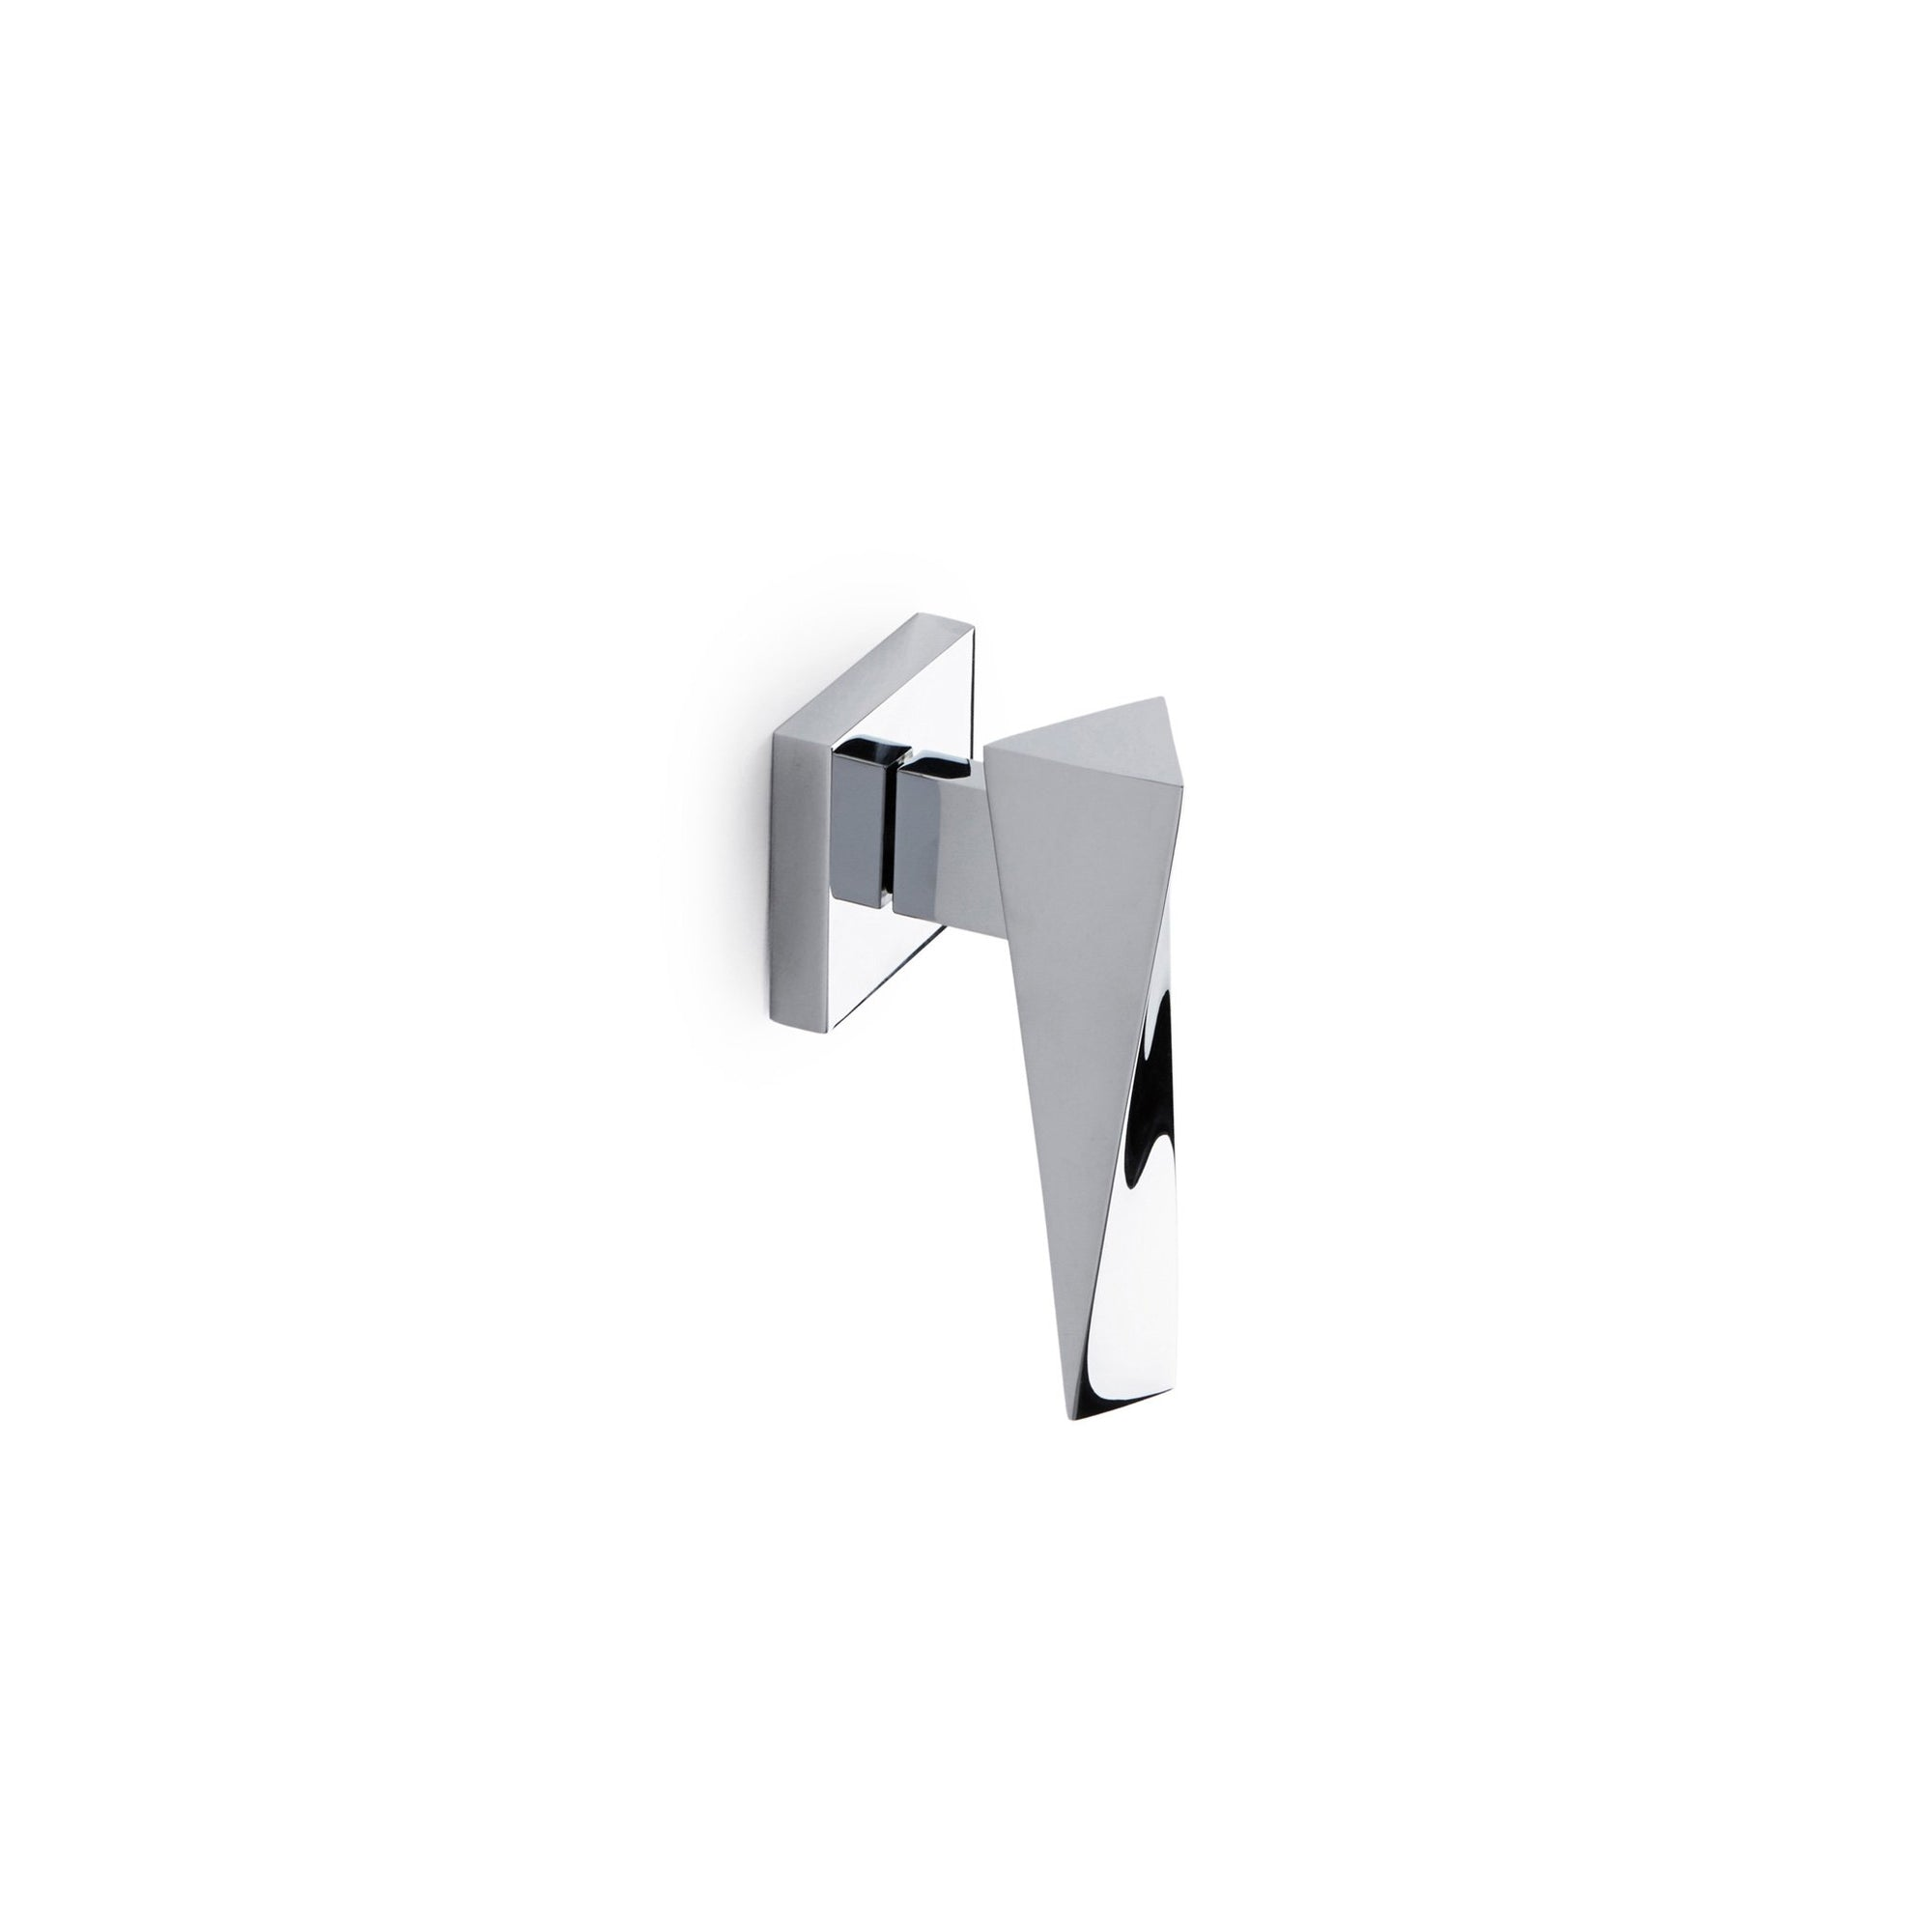 008LV-ESC-ZZ-CP Sherle Wagner International Arco Lever Volume Control and Diverter Trim in Polished Chrome metal finish